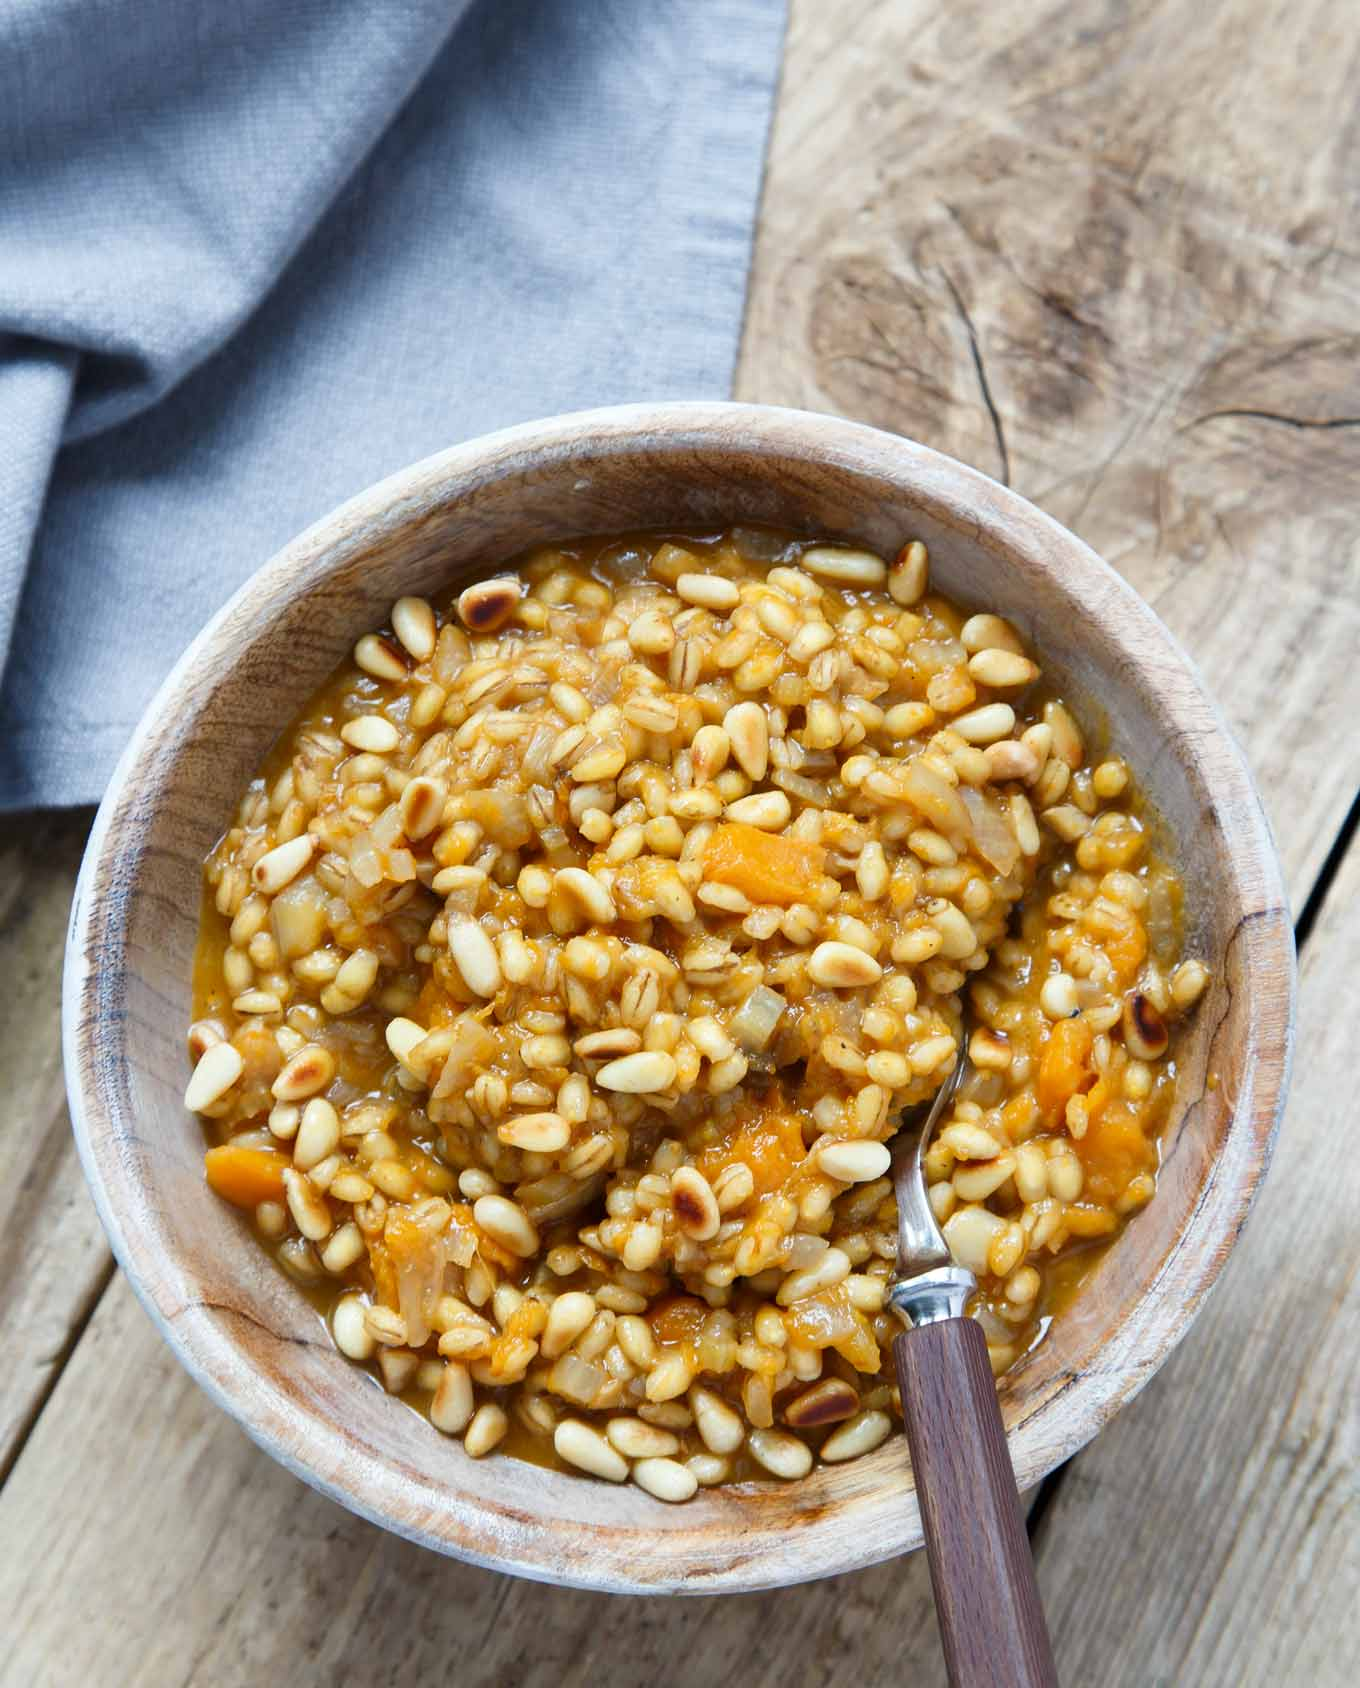 Roasted Butternut Squash Barley Risotto with Toasted Pine Nuts Recipe is an alternative, health boosting, delicious, vegetarian dish. Perfect autumn dinner in.